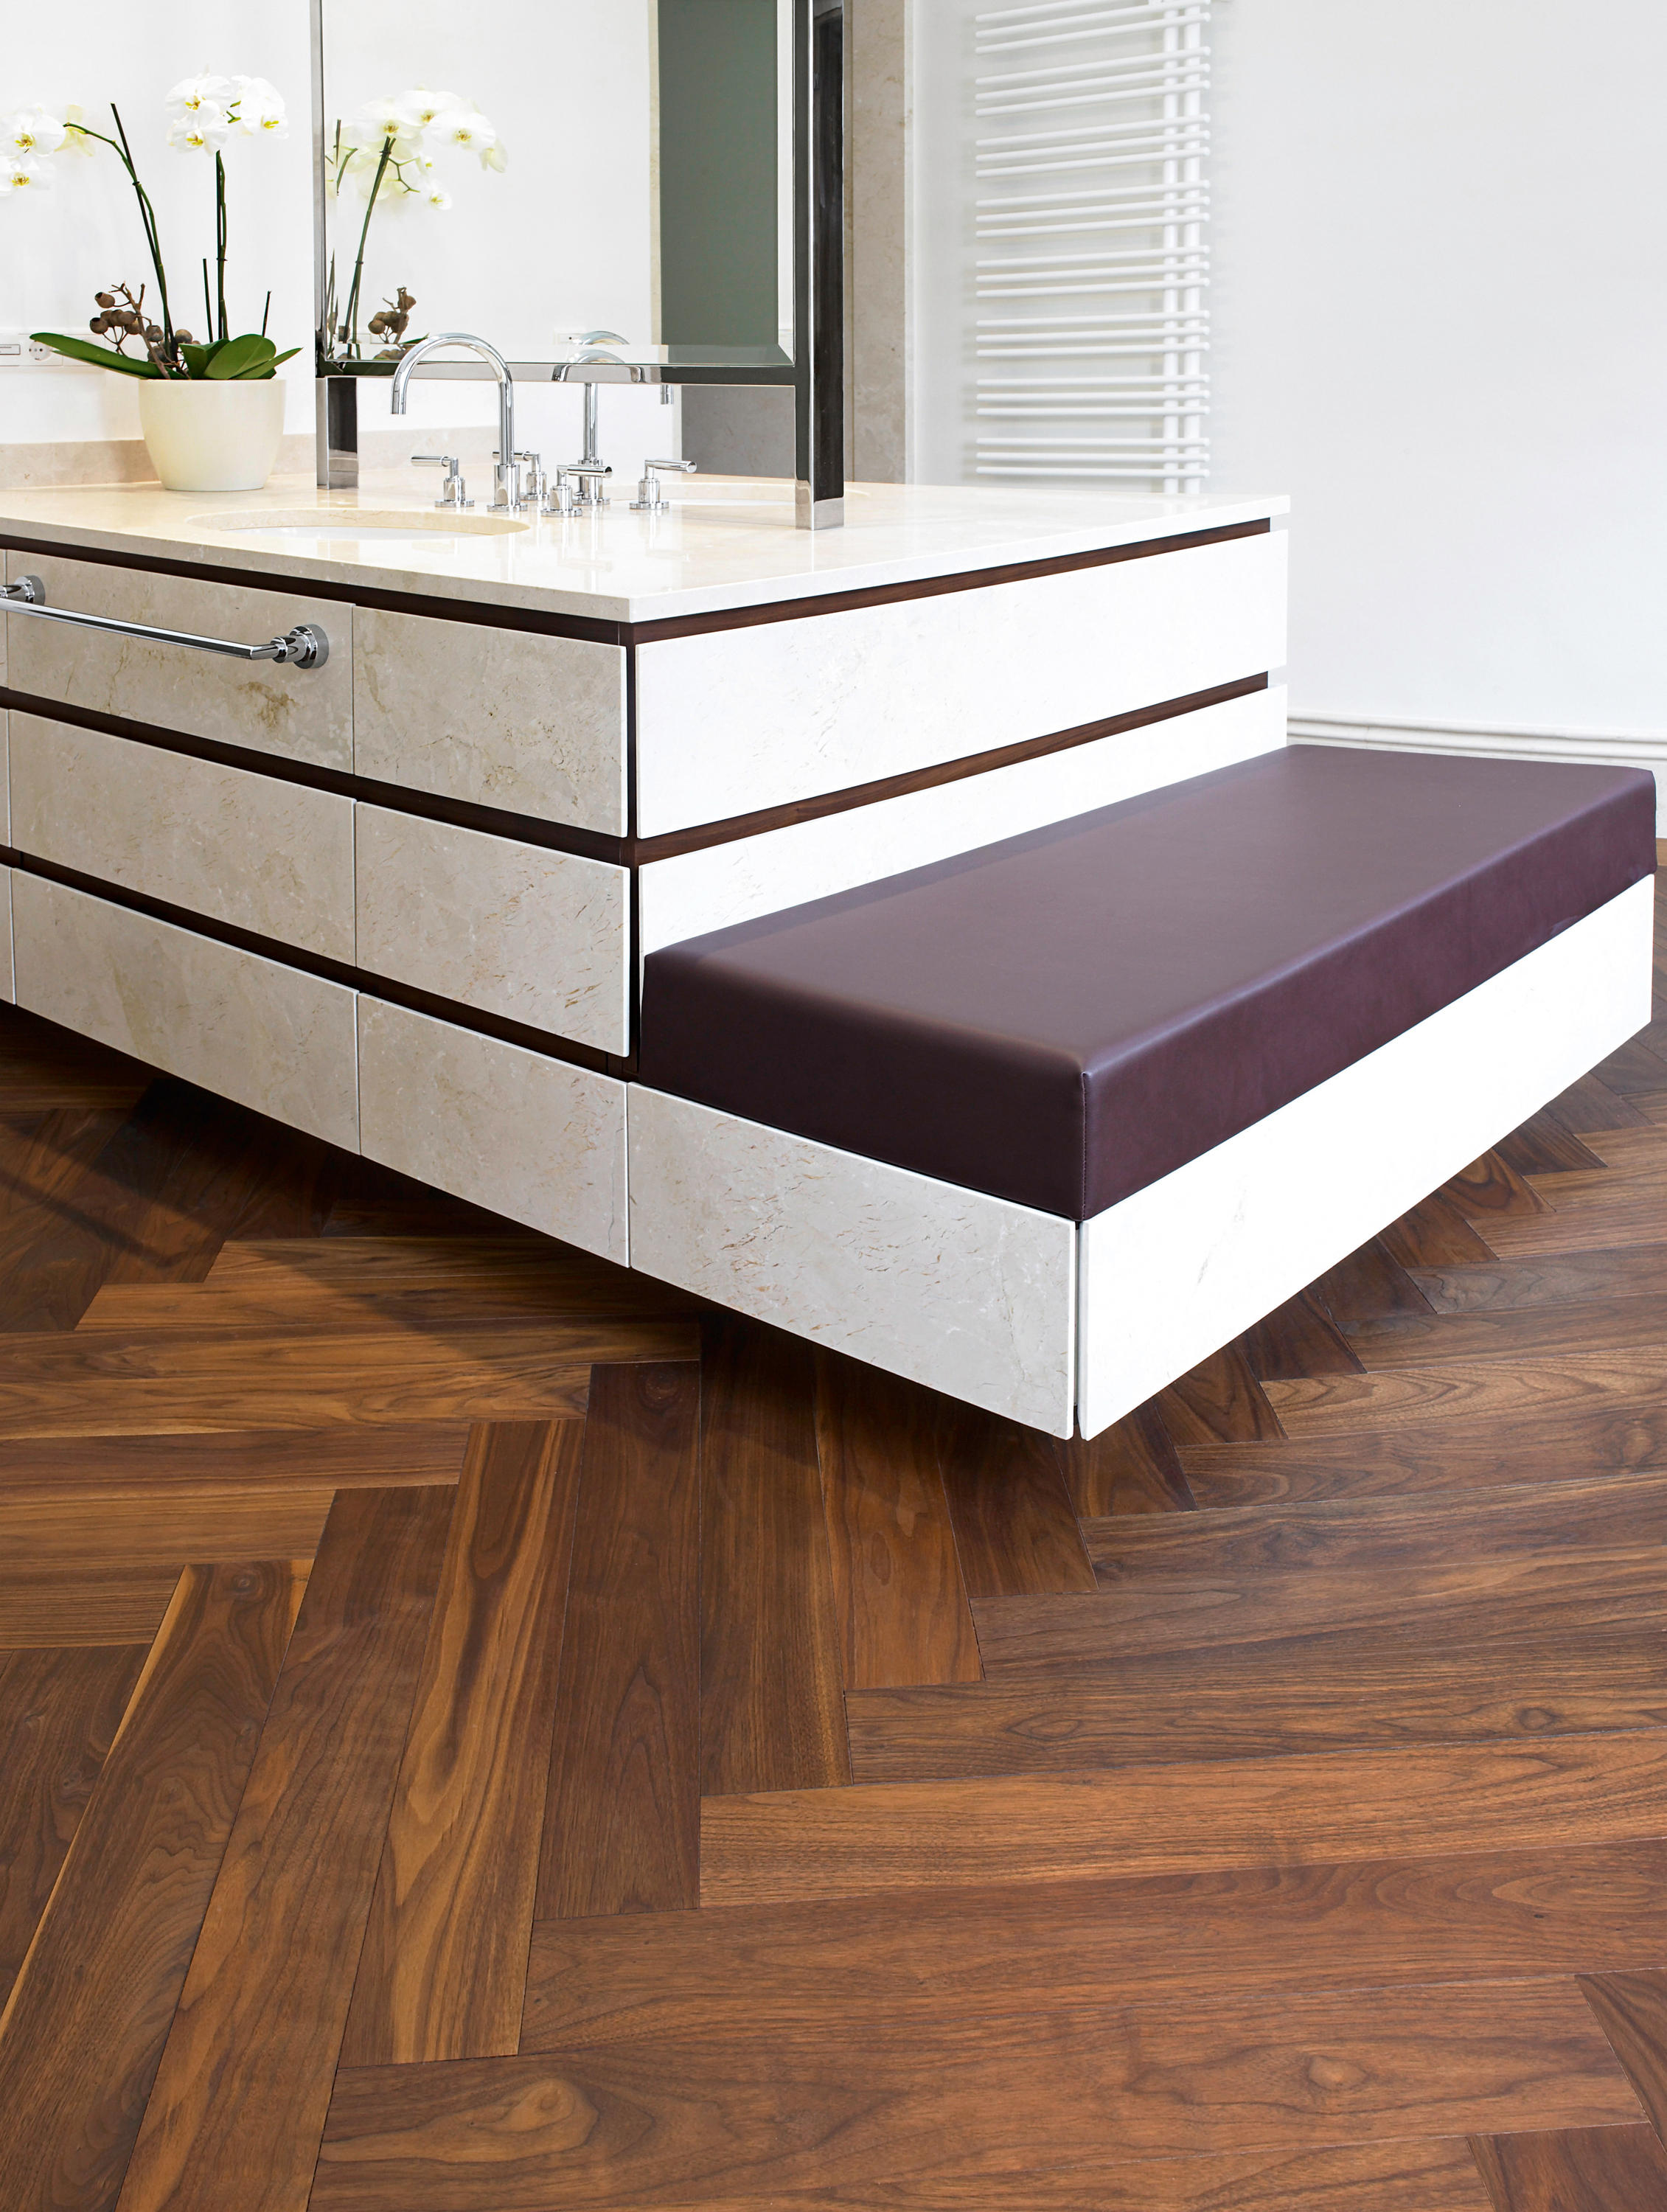 Walnut Usa Piccolino Sanded Oiled Natural By Mafi Wood Flooring